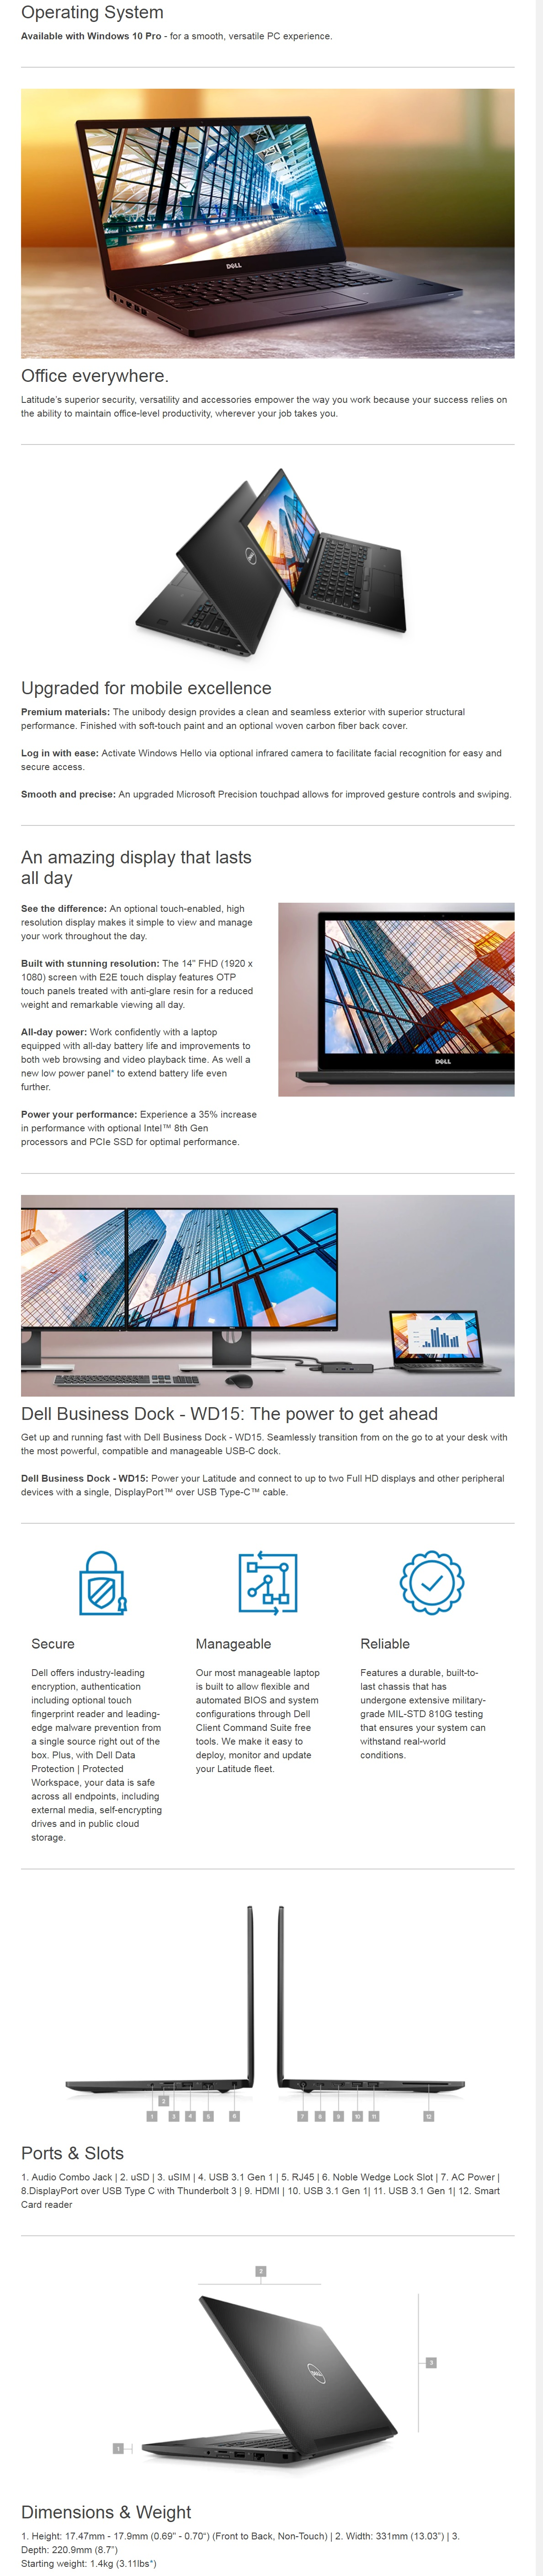 dell protected workspace activation key not accepted